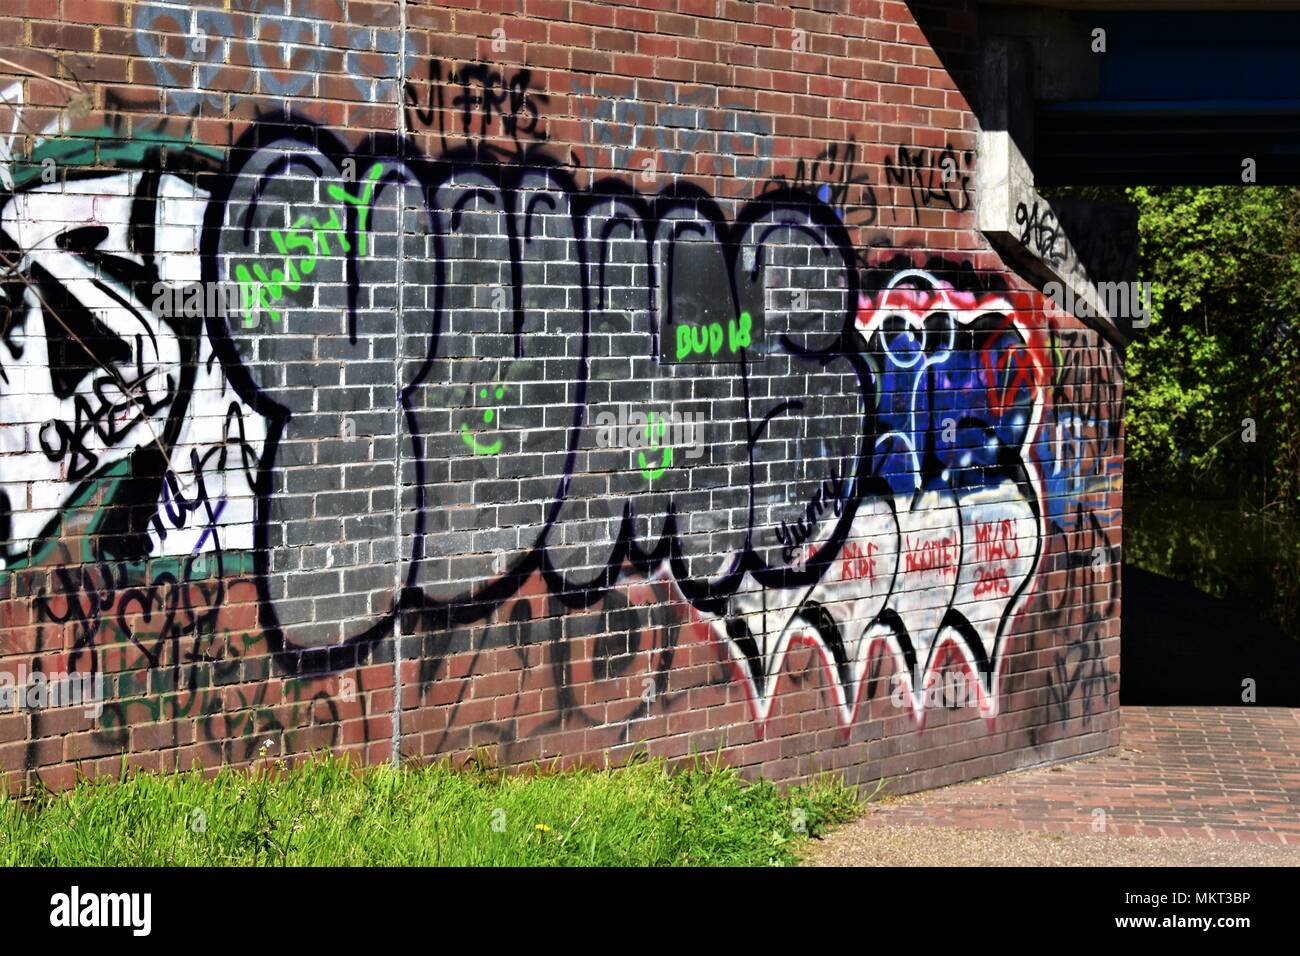 Art or graffiti perception is everything, do we need more or less, creative or destructive. - Stock Image